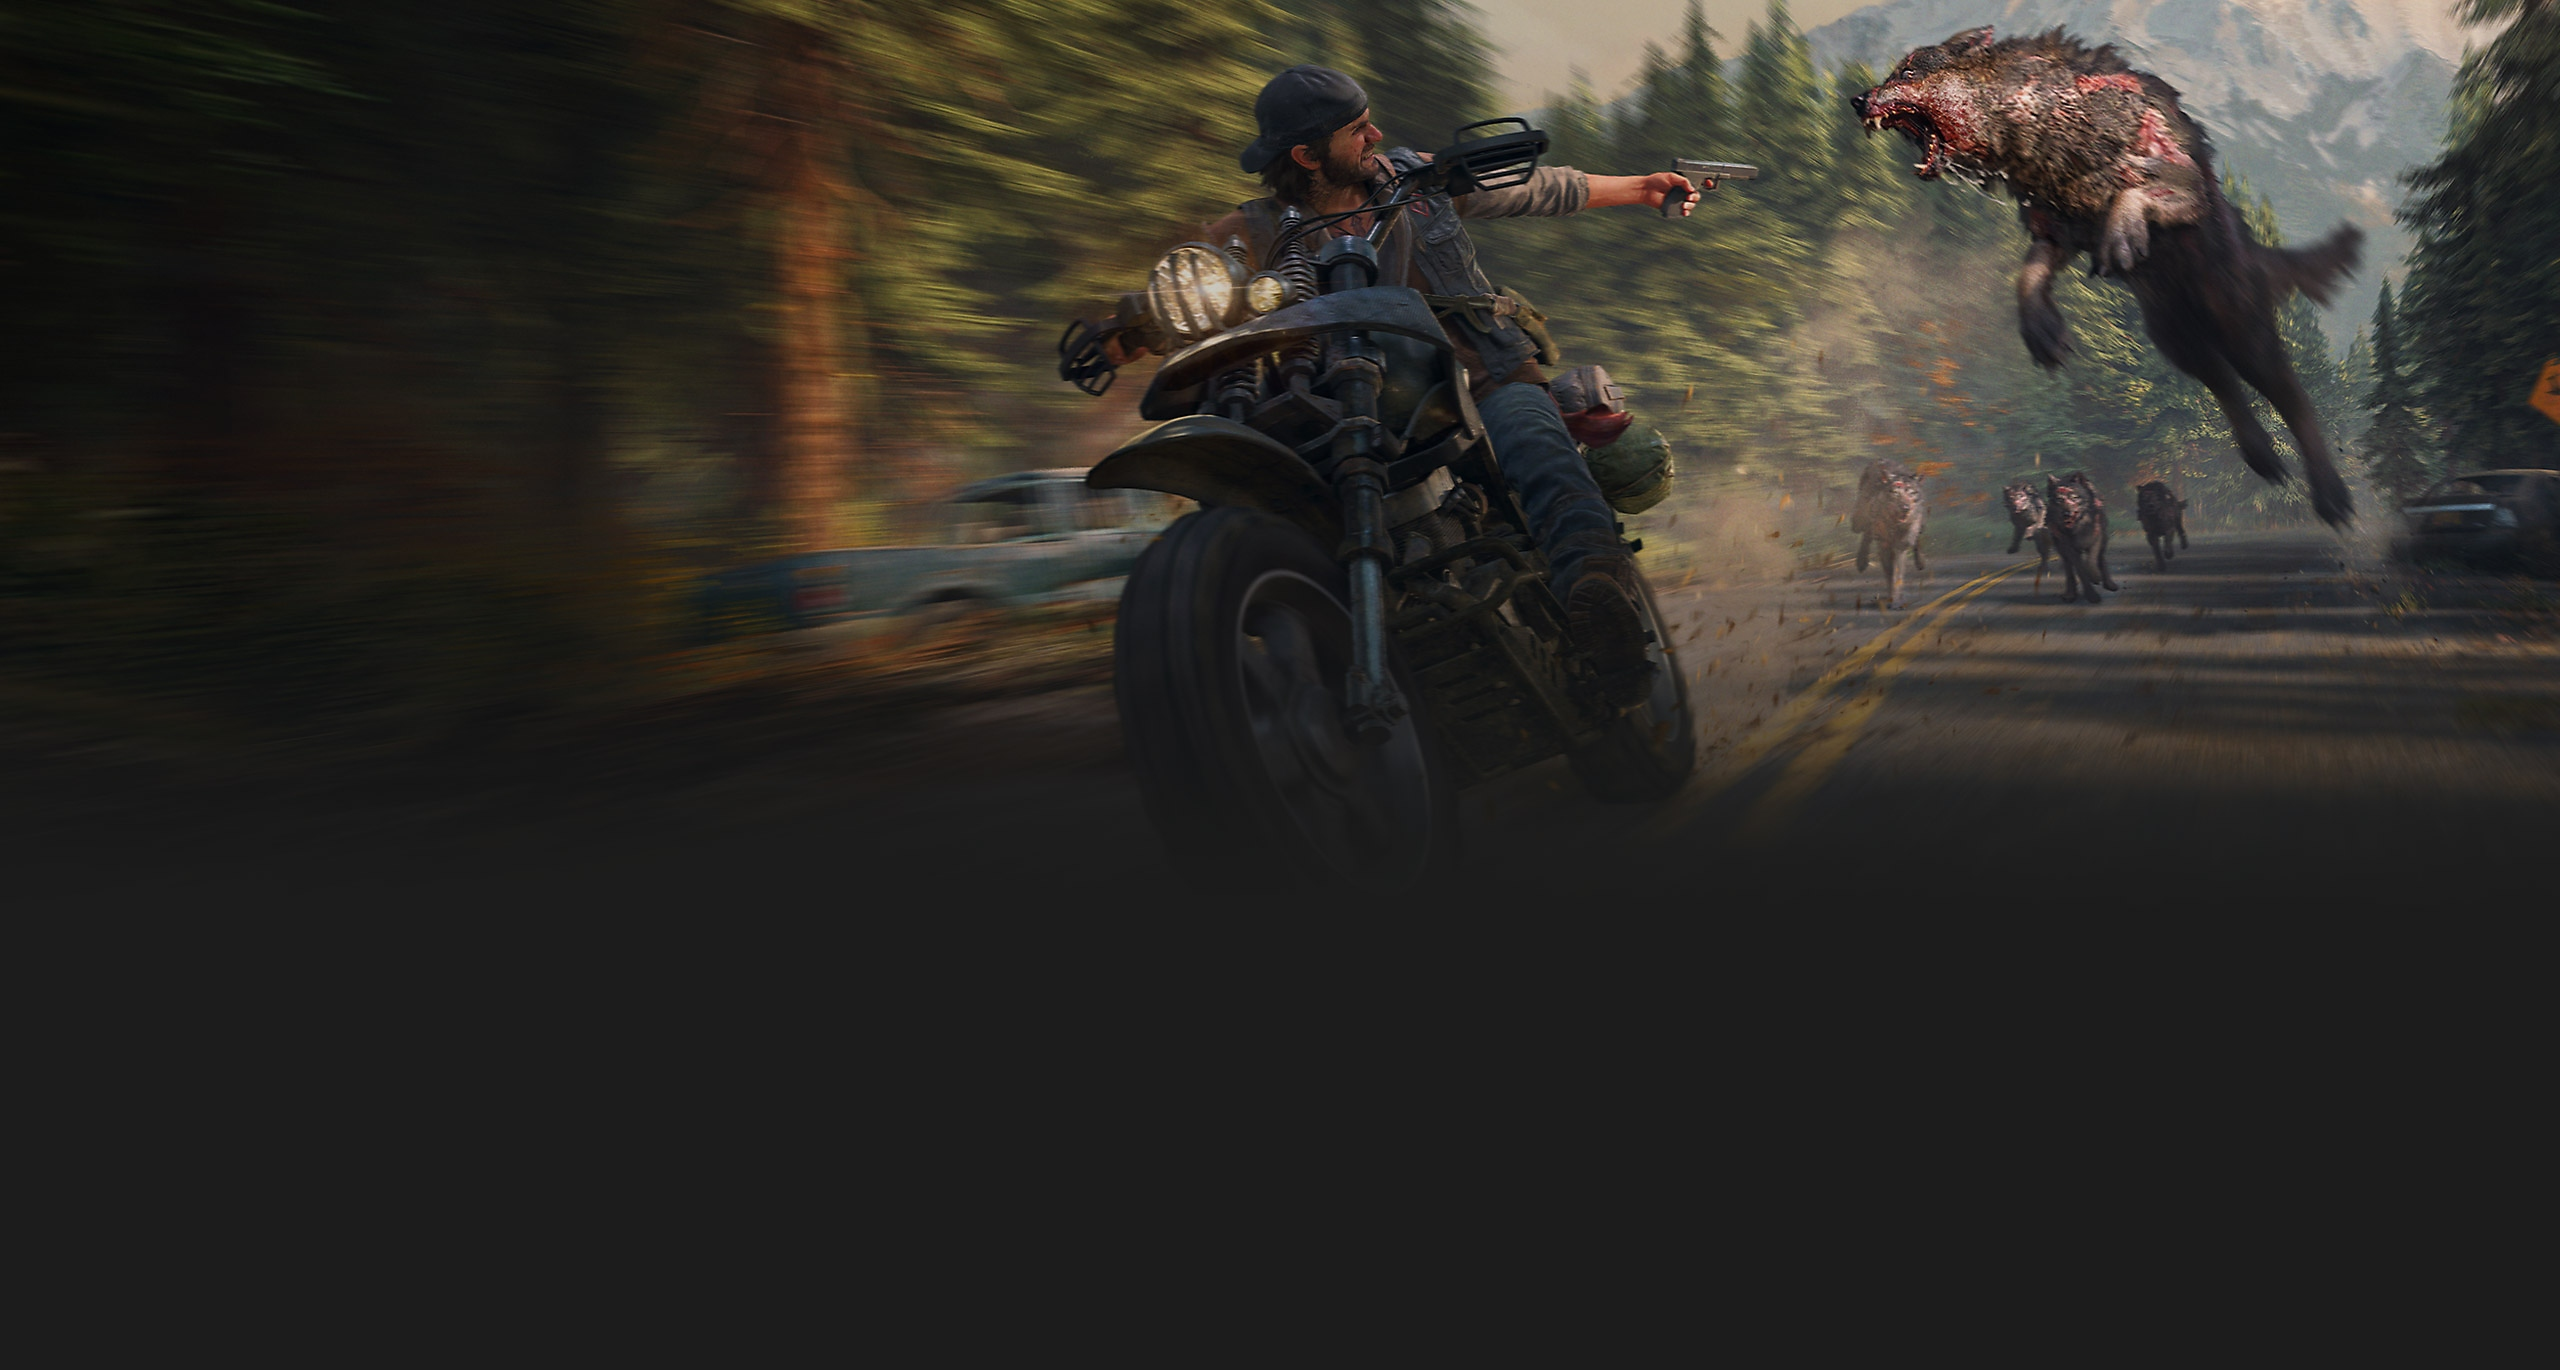 Tu guía de supervivencia para el traicionero mundo de Days Gone